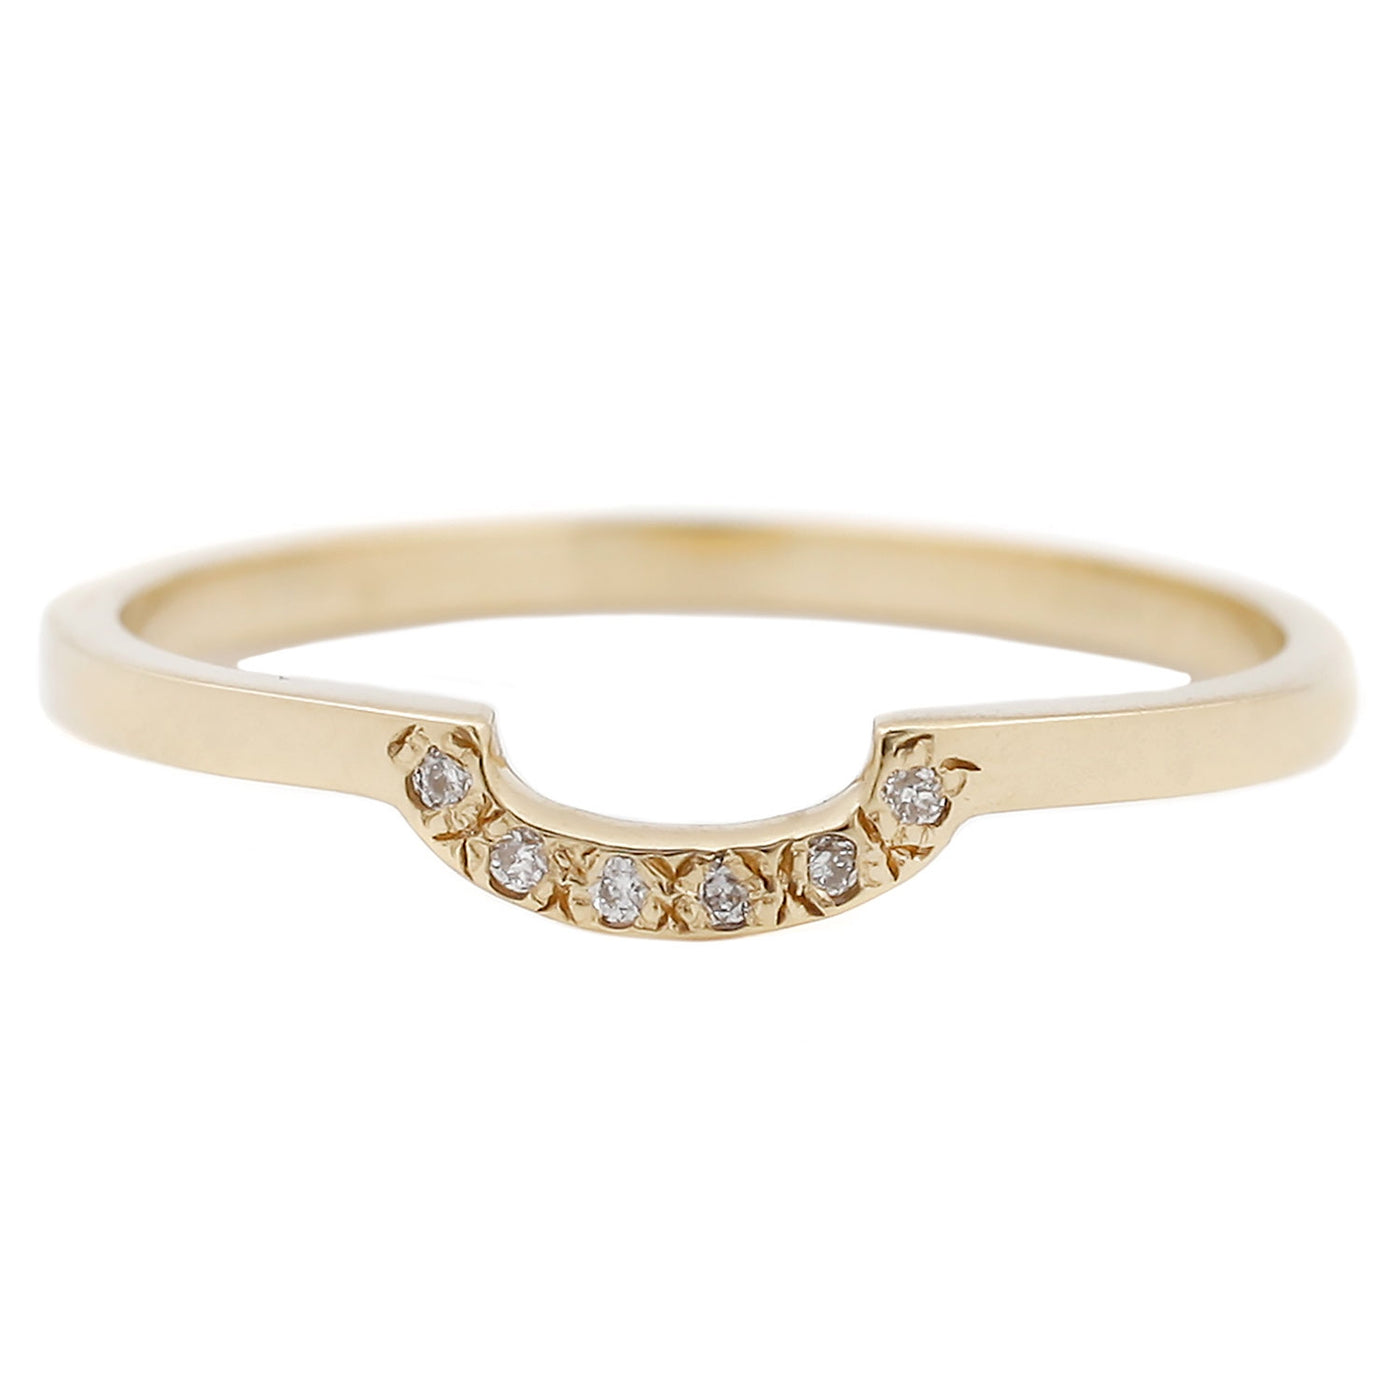 Aili Gold with Diamonds Half Moon Band Ring